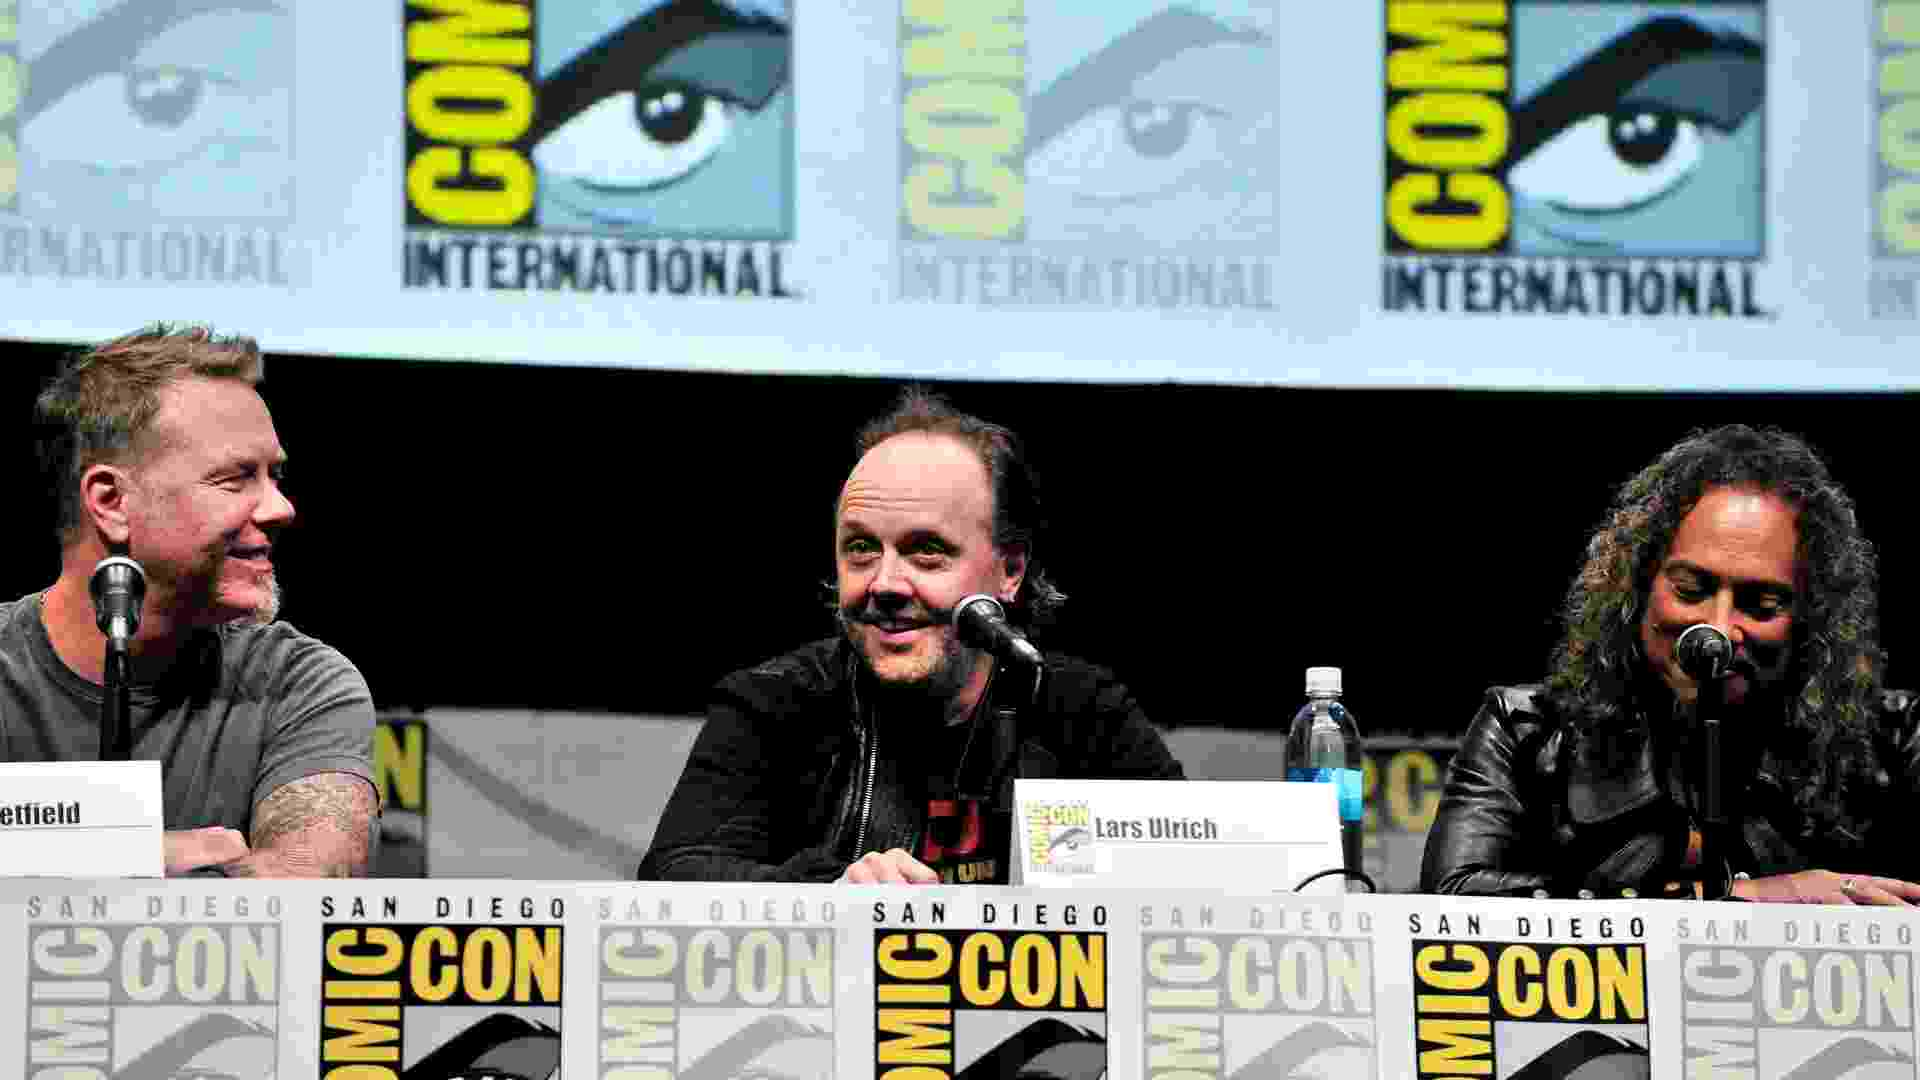 """19.jul.2013 - Os músicos James Hetfield, Lars Ulrich e Kirk Hammett no evento """"At The Drive-In With Metallica"""" durante a Comic-Con - Getty Images"""